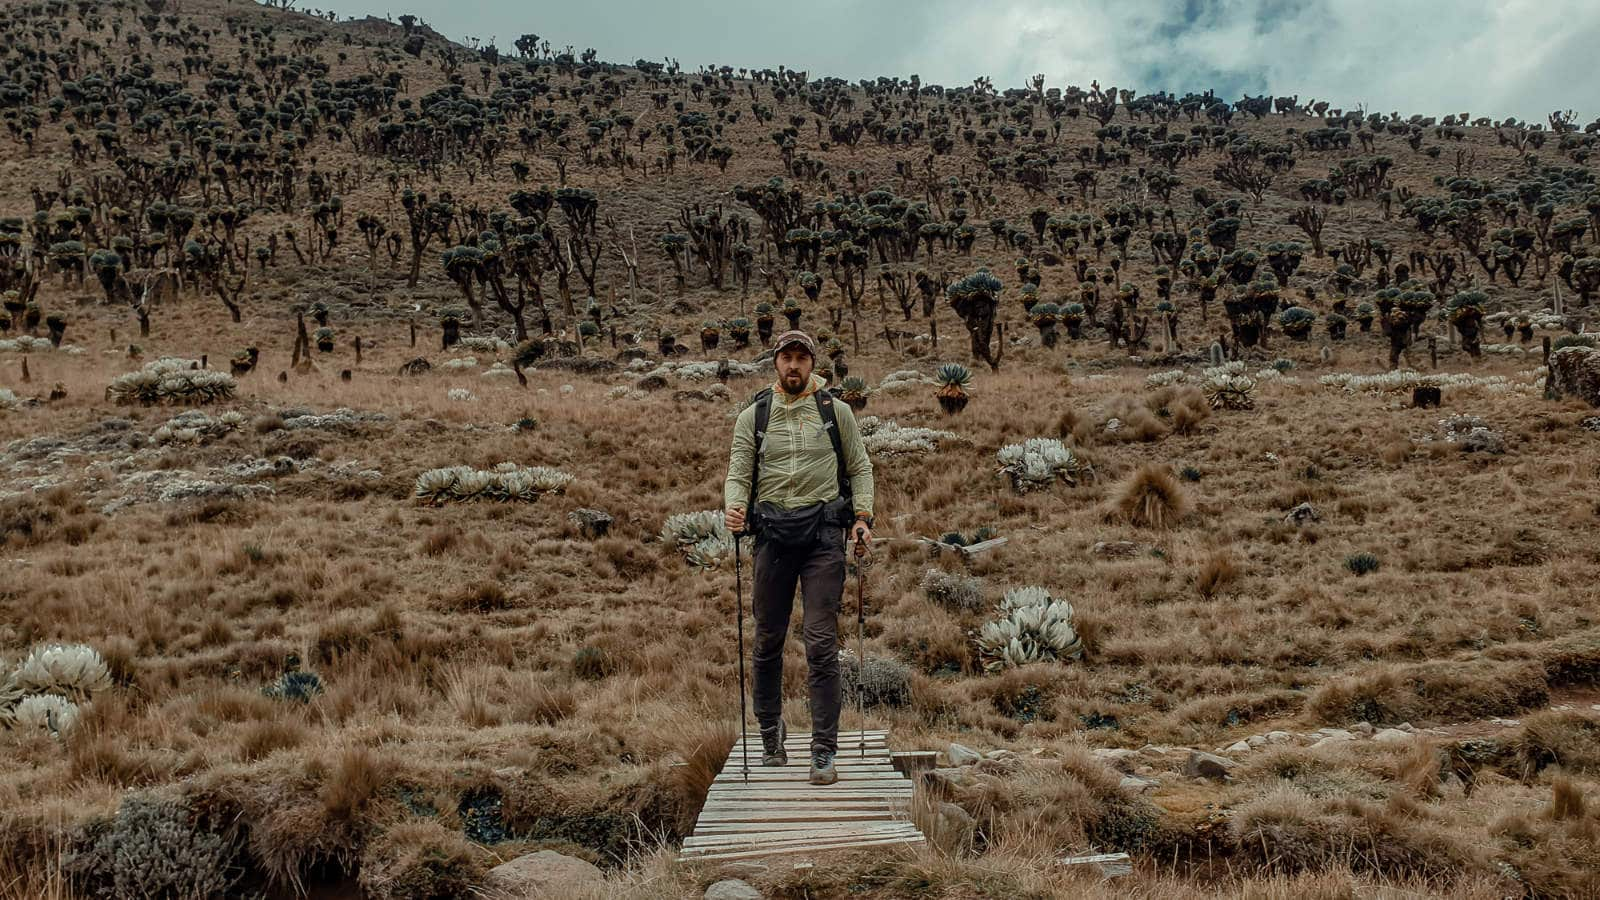 When I researched about the Naro Moru route to Mt. Kenya, I often encountered reviews that it is the least scenic and the least beautiful route. Well I don't know how the other routes look like, but I found this one stunning, and I hope this few photos manage to show that.